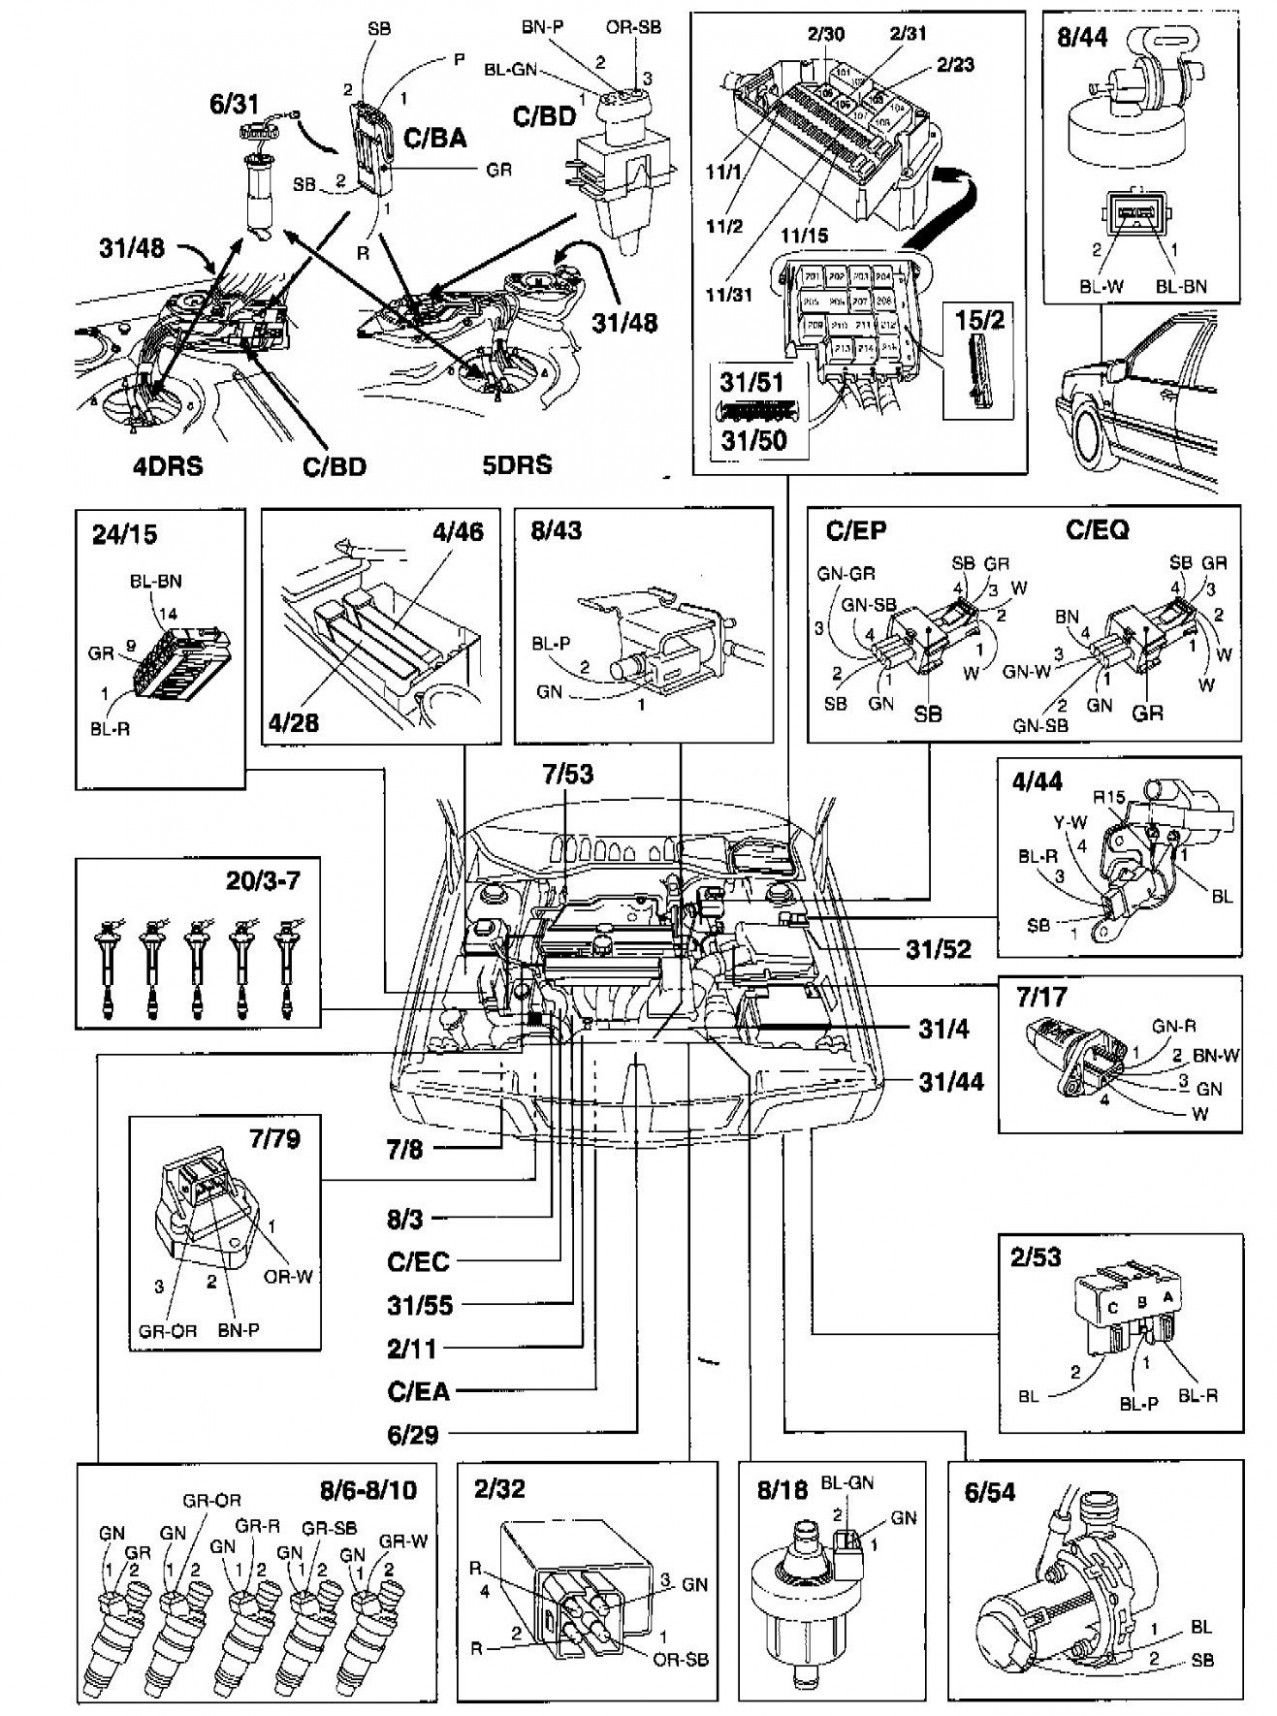 1999 Volvo S80 Engine Diagram 1990 Miata Fuse Box Diagram Fusebox Yenpancane Jeanjaures37 Fr